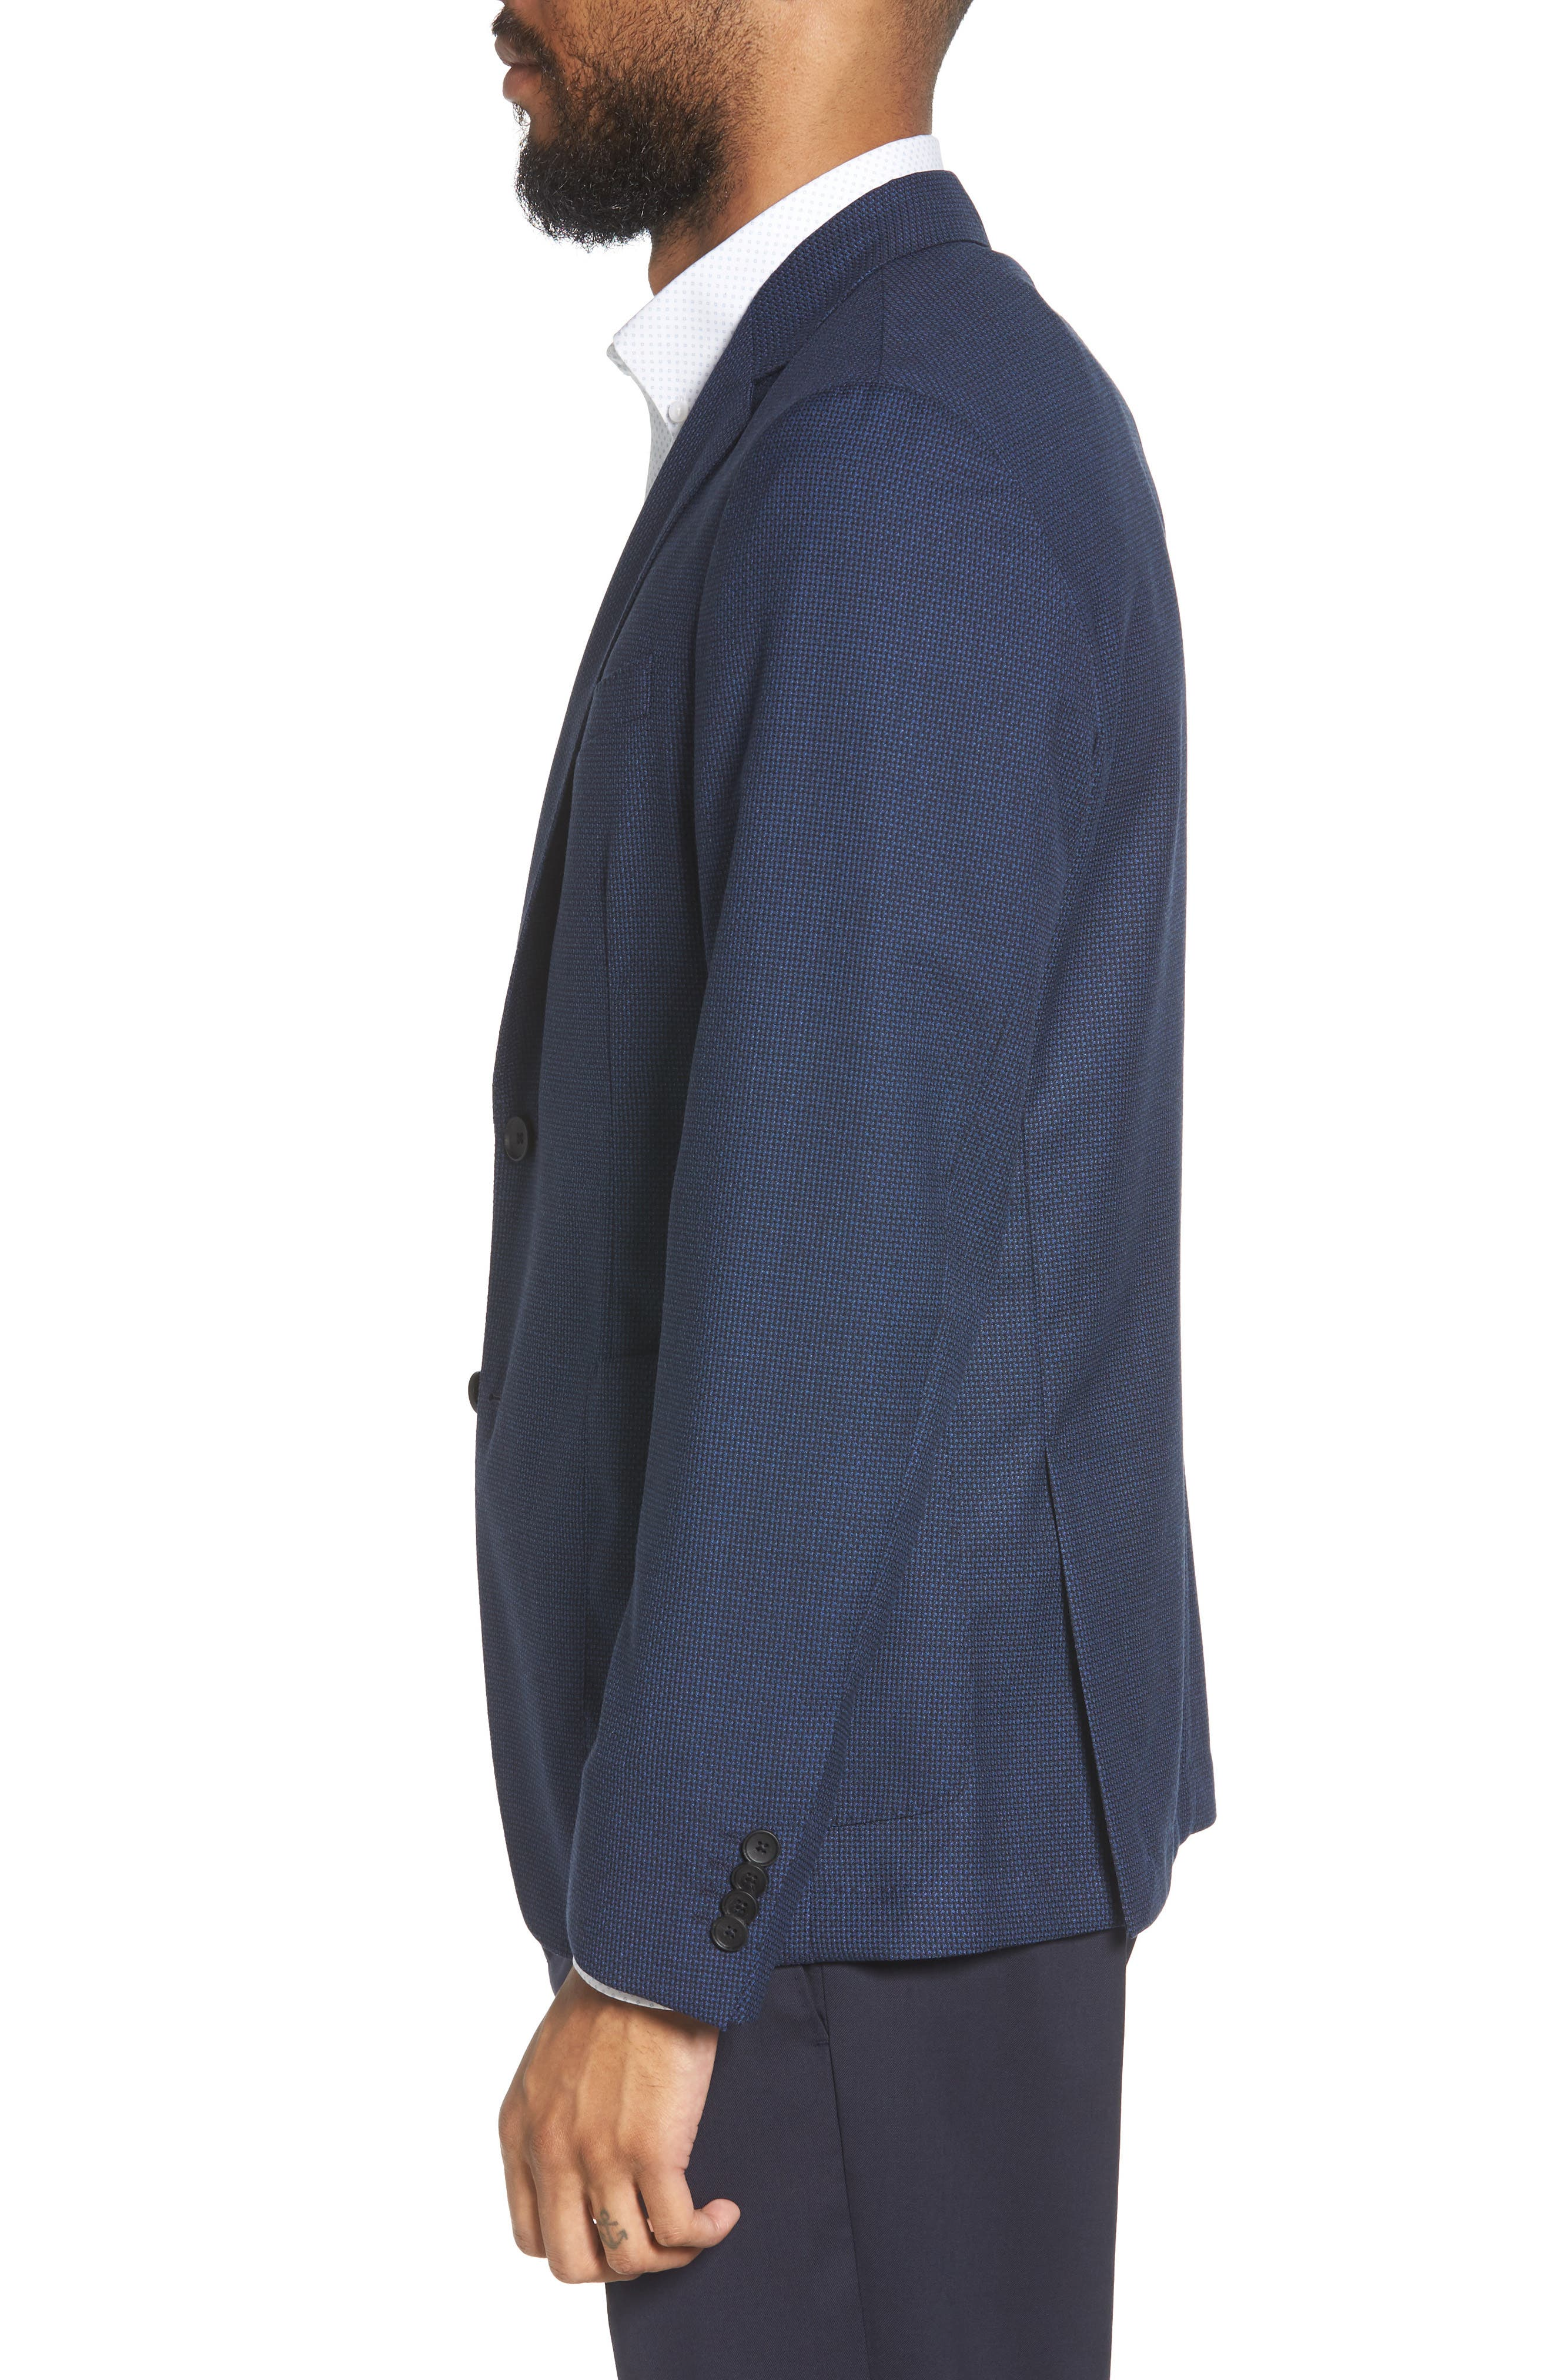 Nold Trim Fit Wool Blazer,                             Alternate thumbnail 3, color,                             BLUE